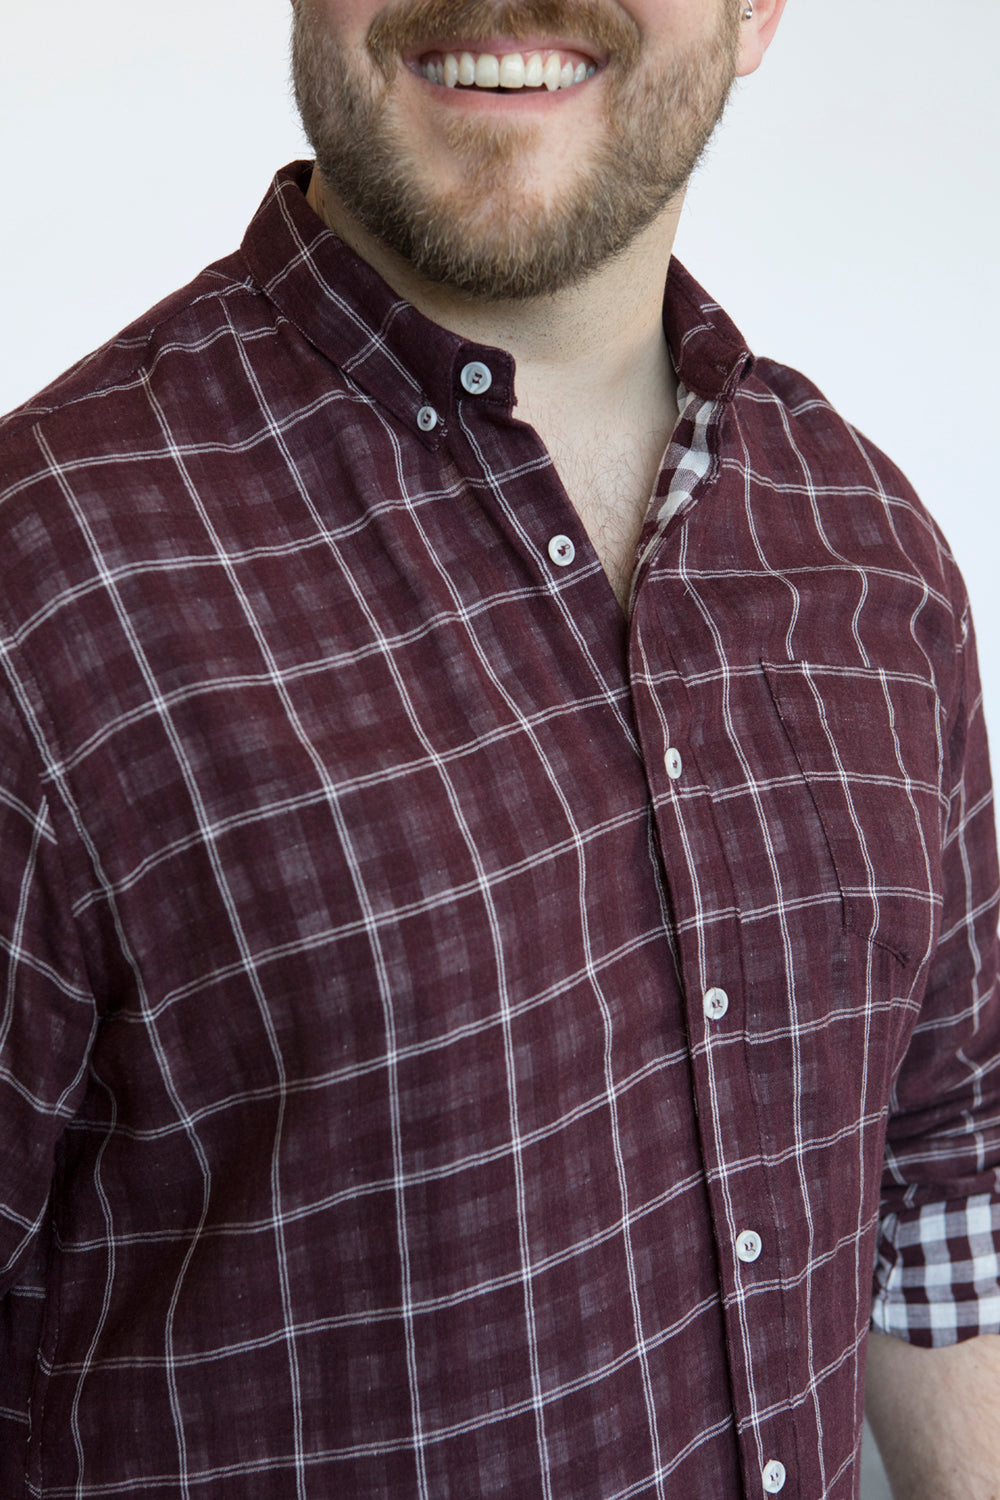 Burgundy Windowpane & Gingham Double Cloth Shirt - Buddy   Size M Available